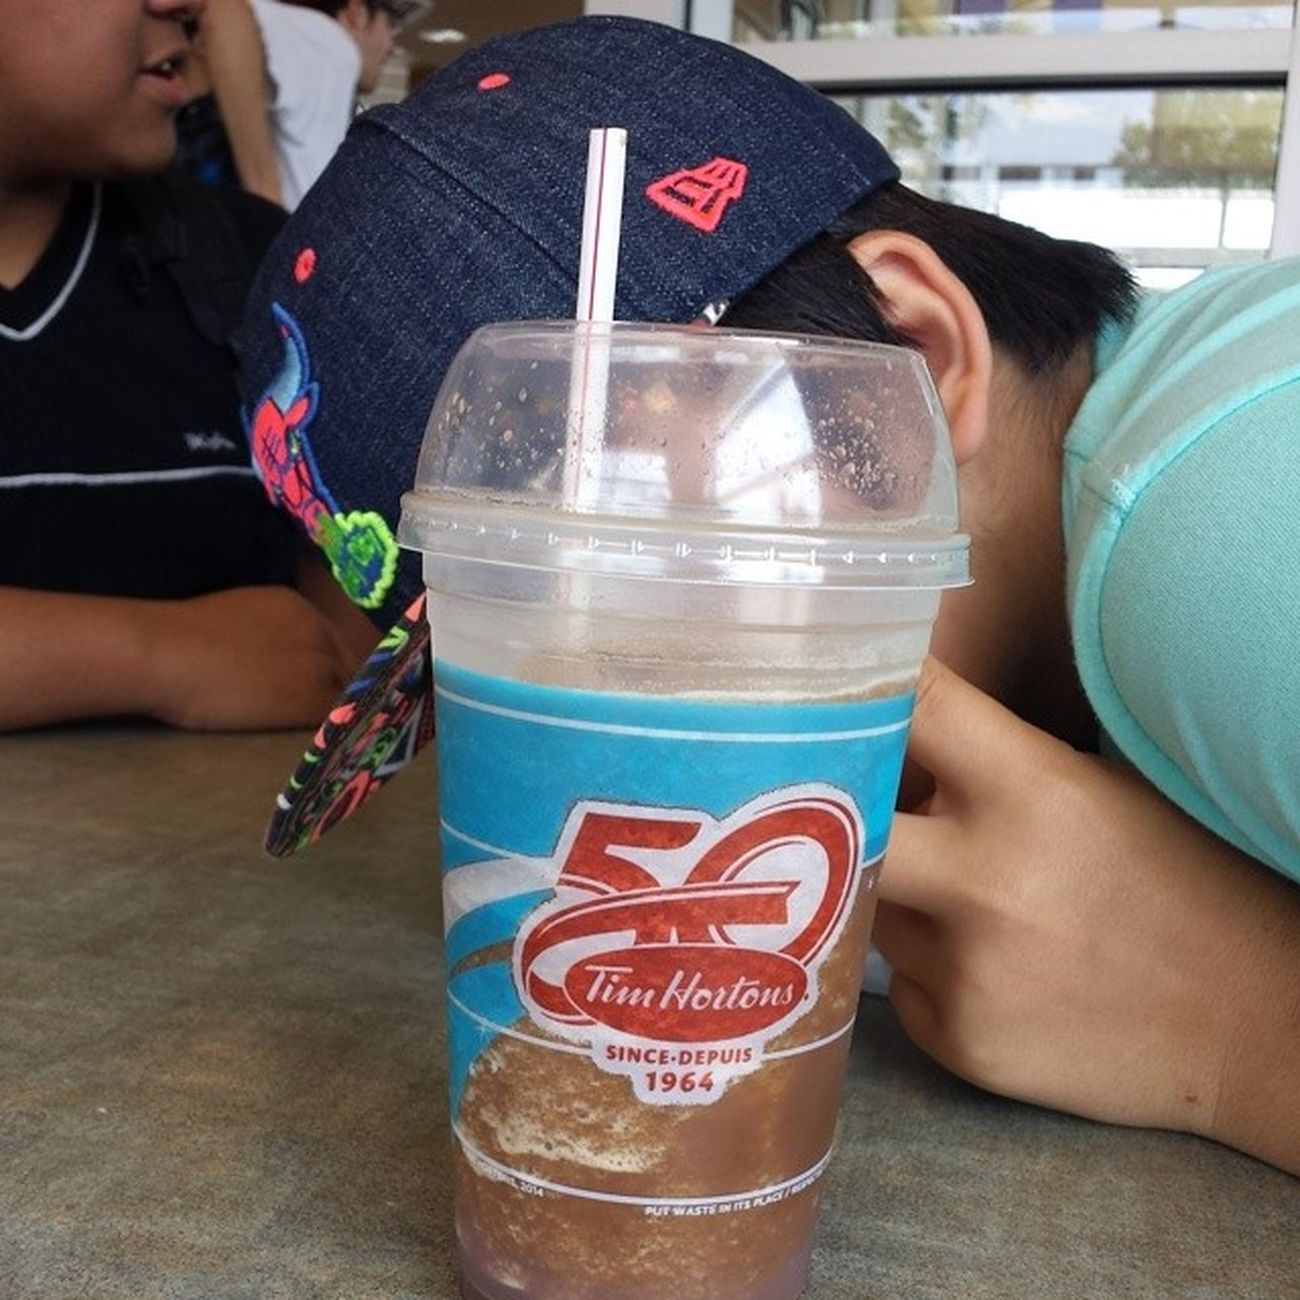 Chocolate ice capp from Tims Timhortons Icecapp Drink